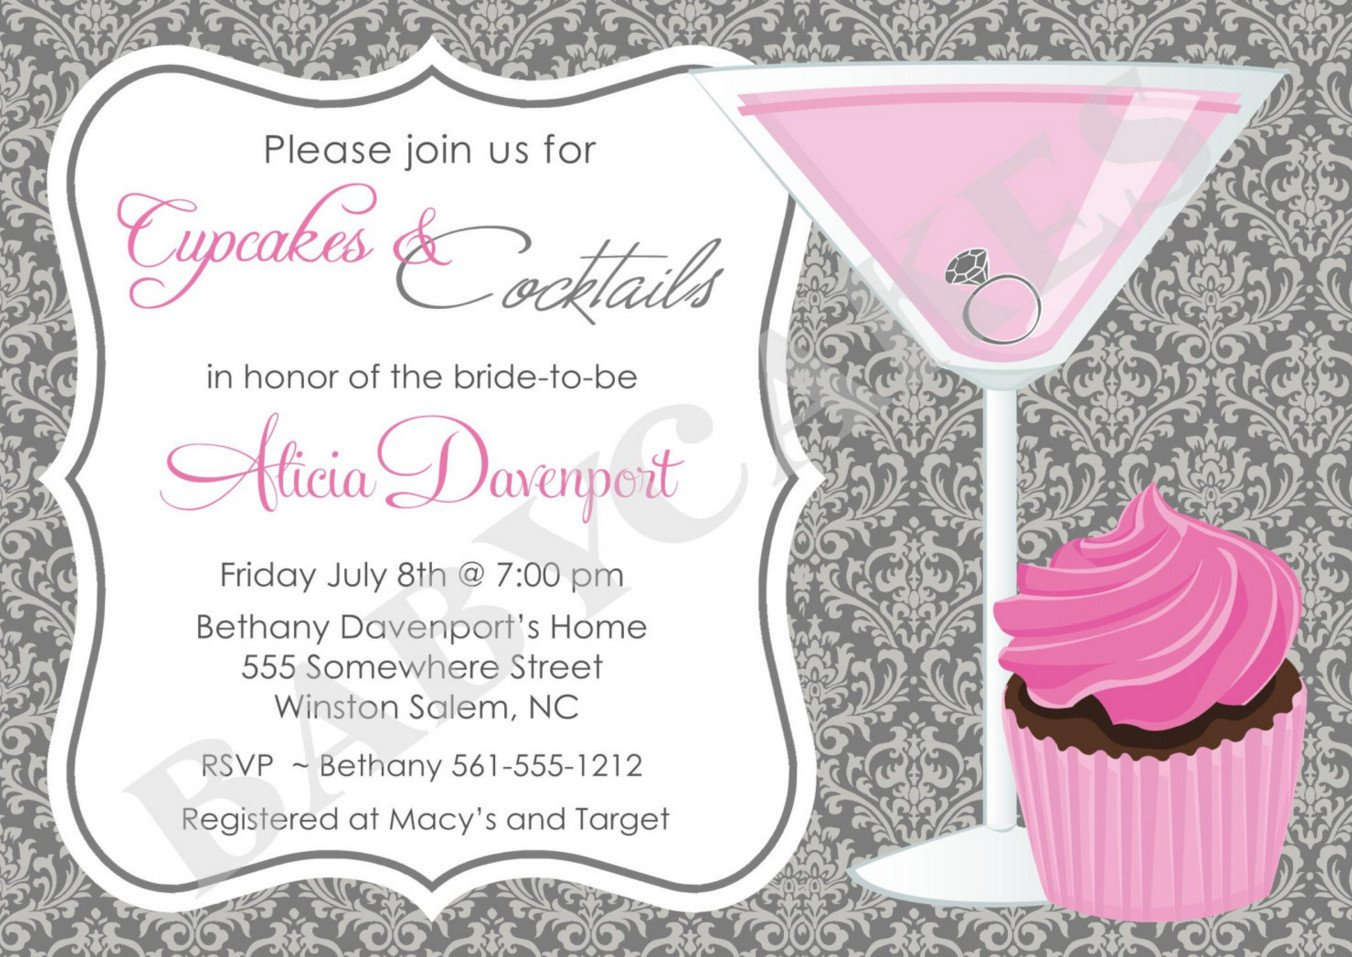 Cocktail Party Invitation Template Holiday Cocktail Party Invitation Template Wcm Corporate